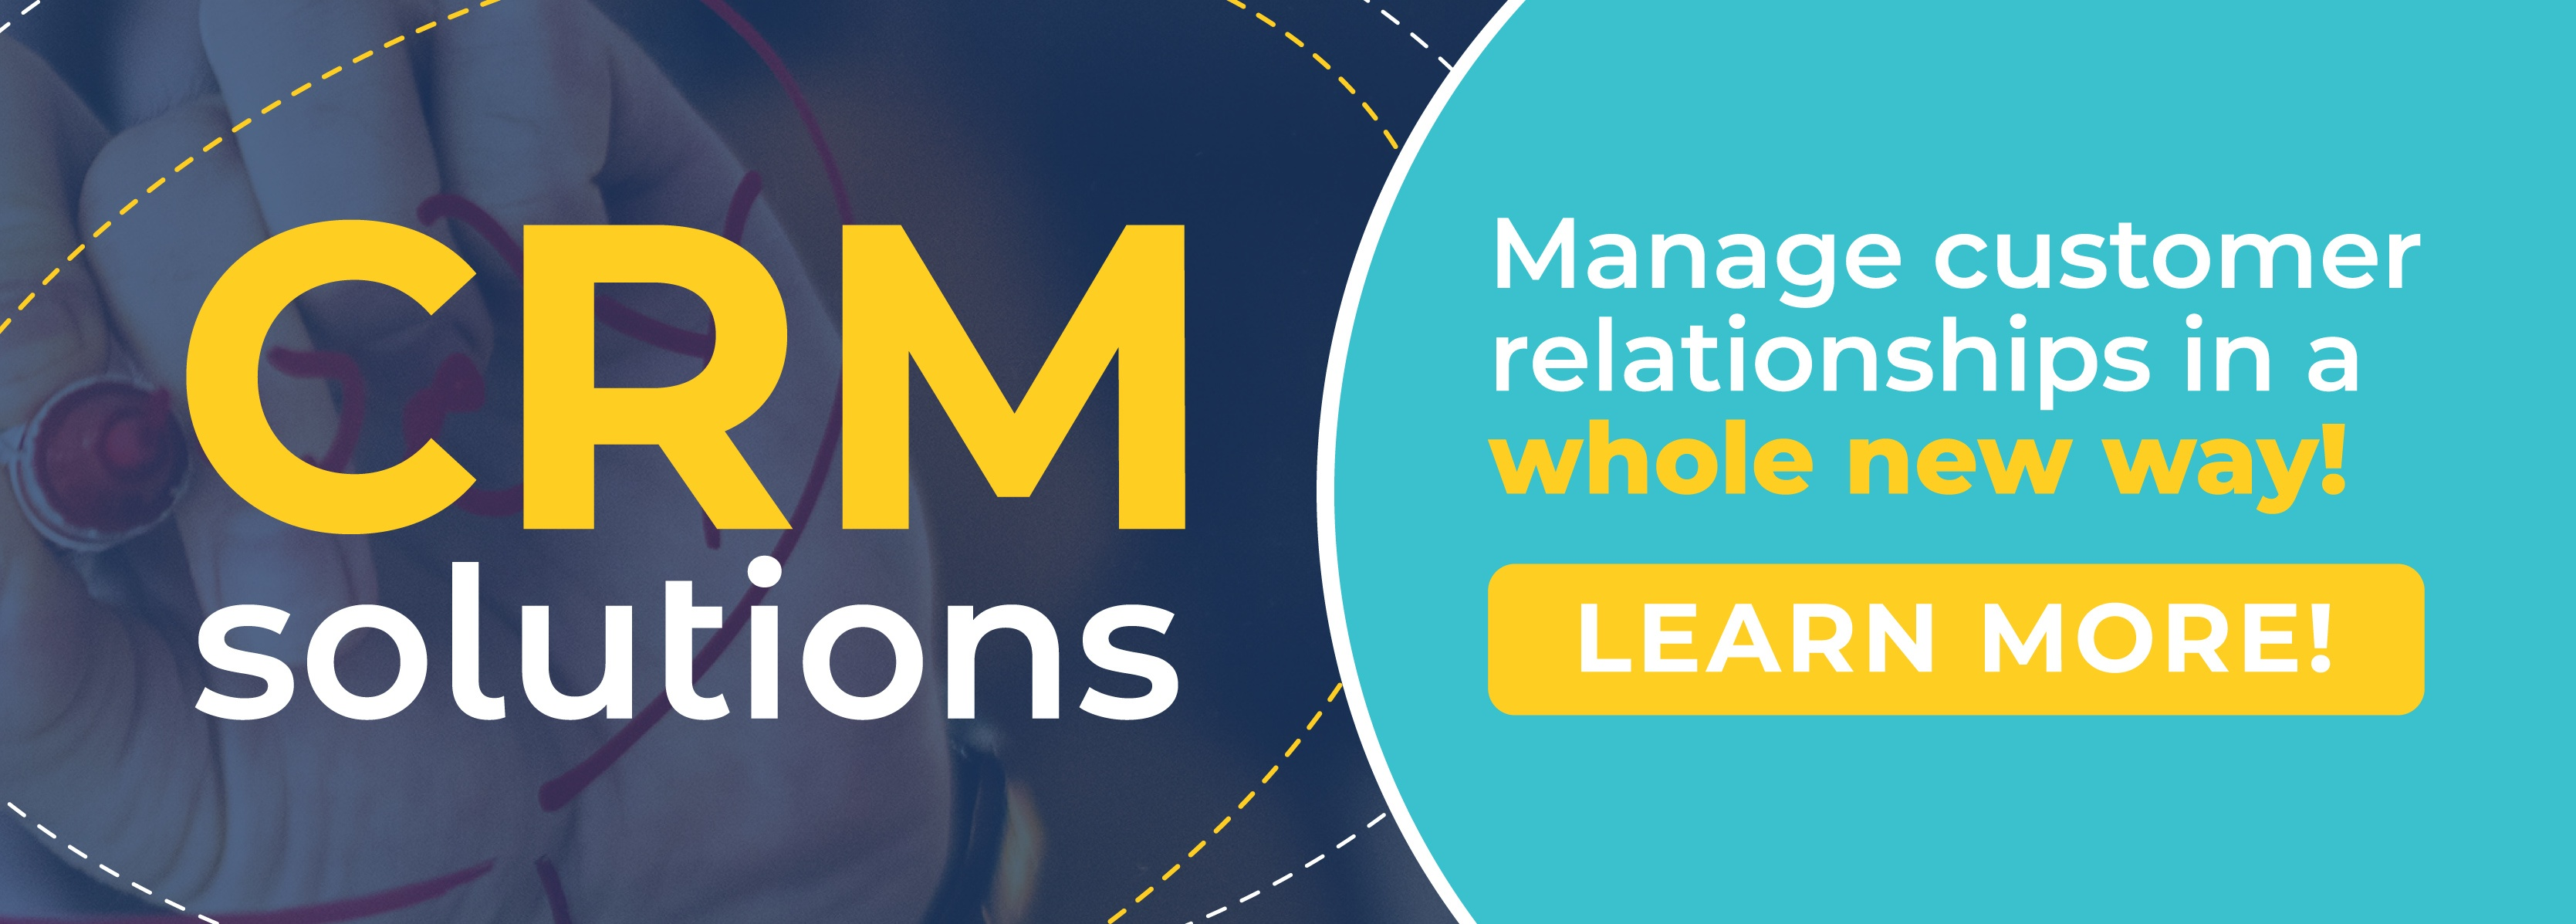 Learn more about CRM Solutions